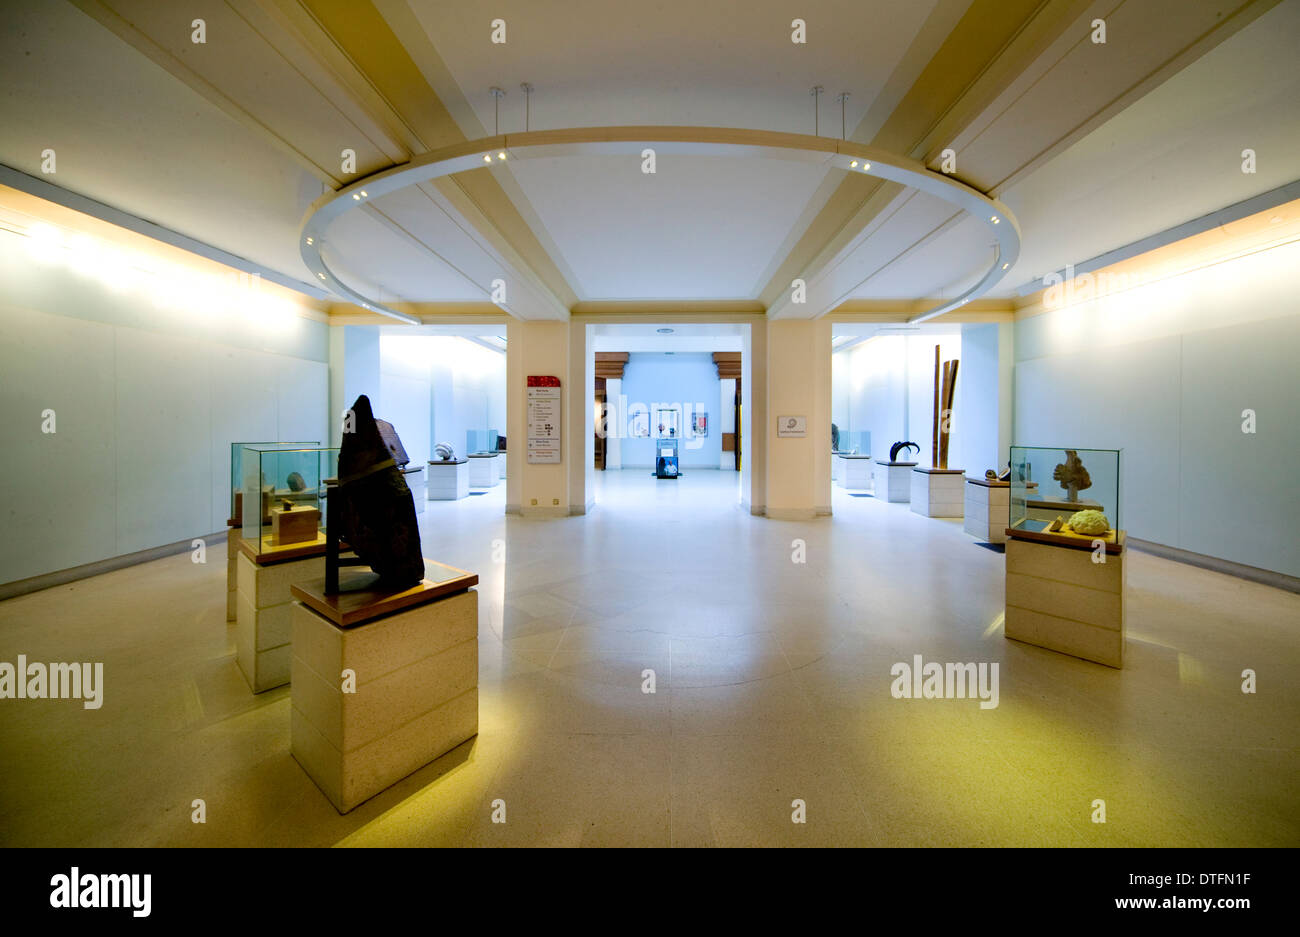 The Lasting Impressions gallery - Stock Image